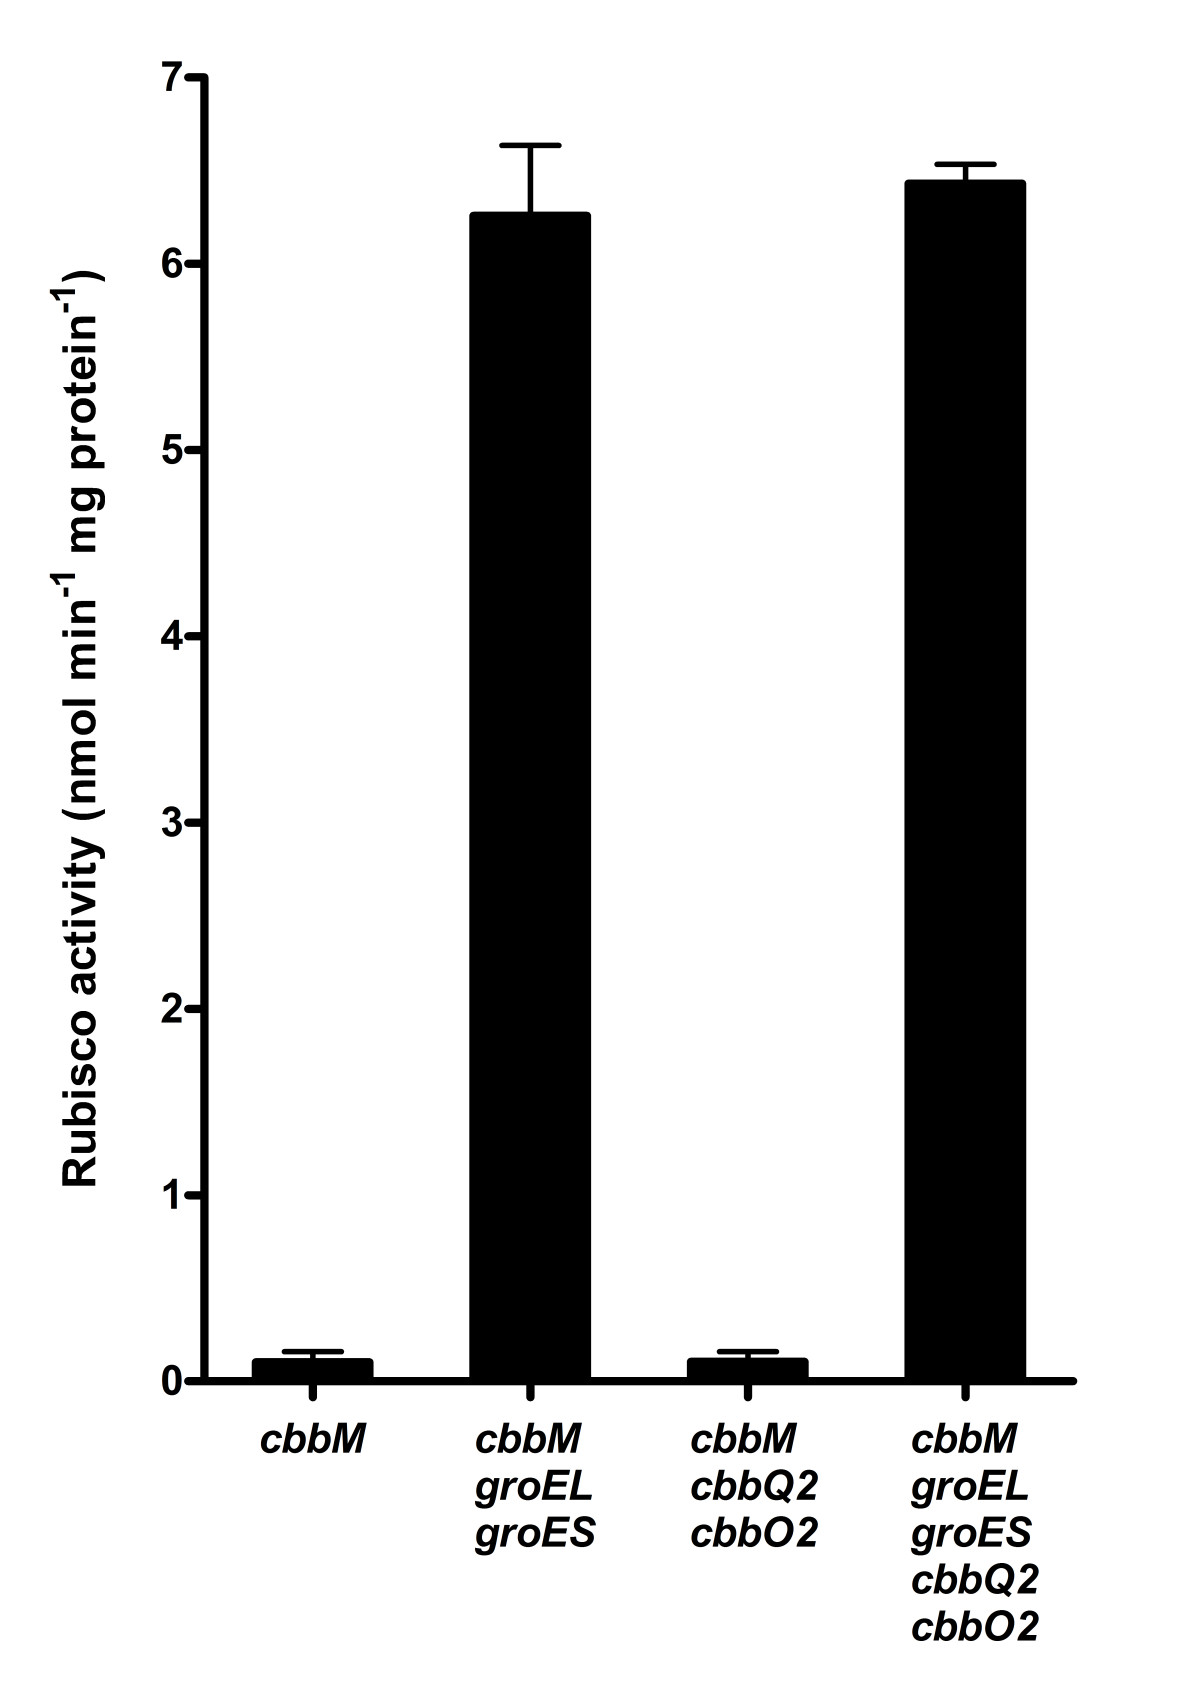 https://static-content.springer.com/image/art%3A10.1186%2F1754-6834-6-125/MediaObjects/13068_2013_Article_347_Fig2_HTML.jpg